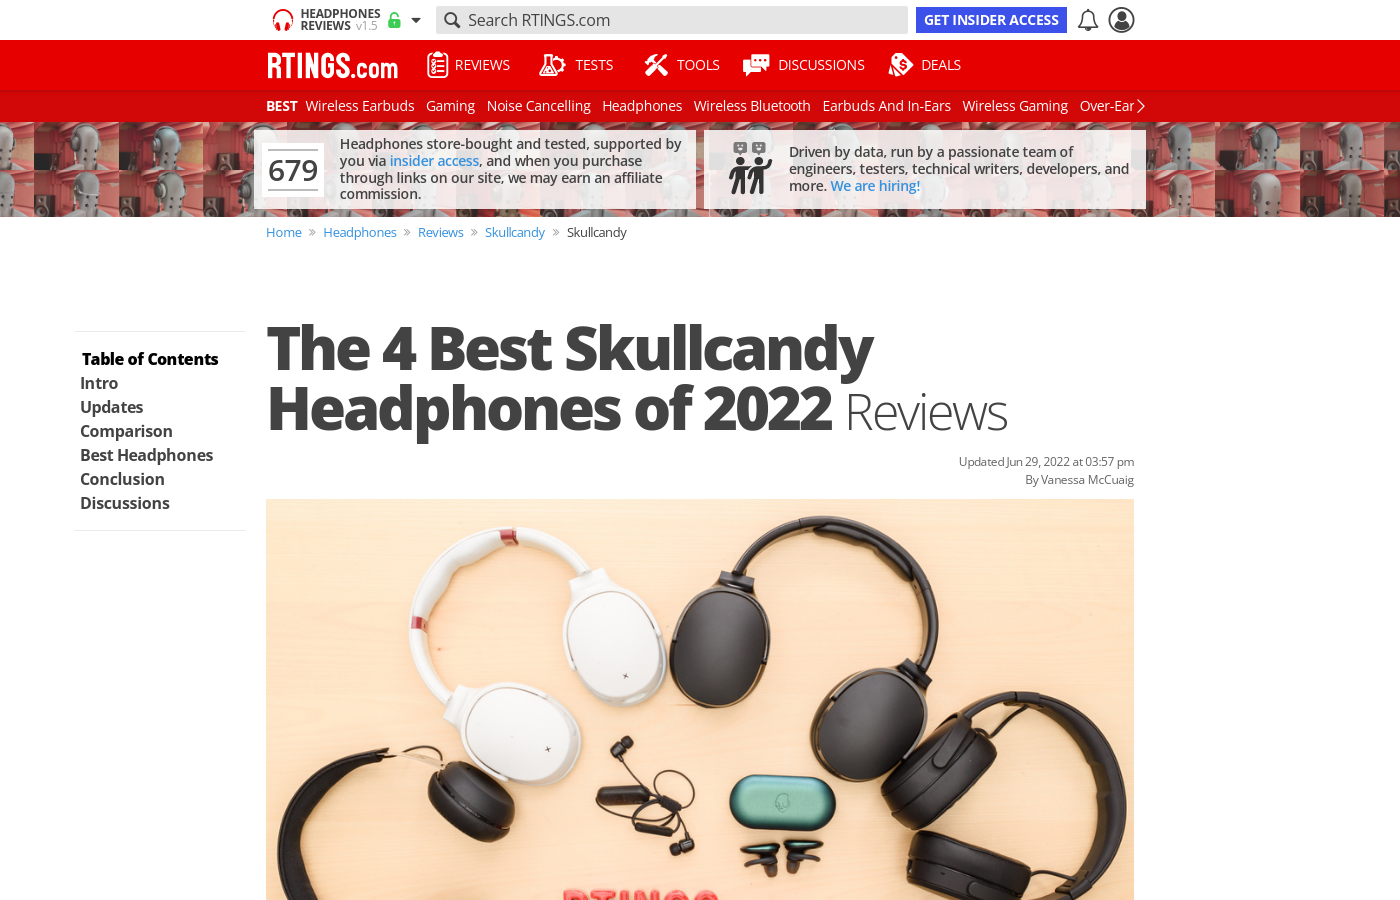 7c3d5cce5a0 The Best Skullcandy Headphones of 2019: Reviews - RTINGS.com